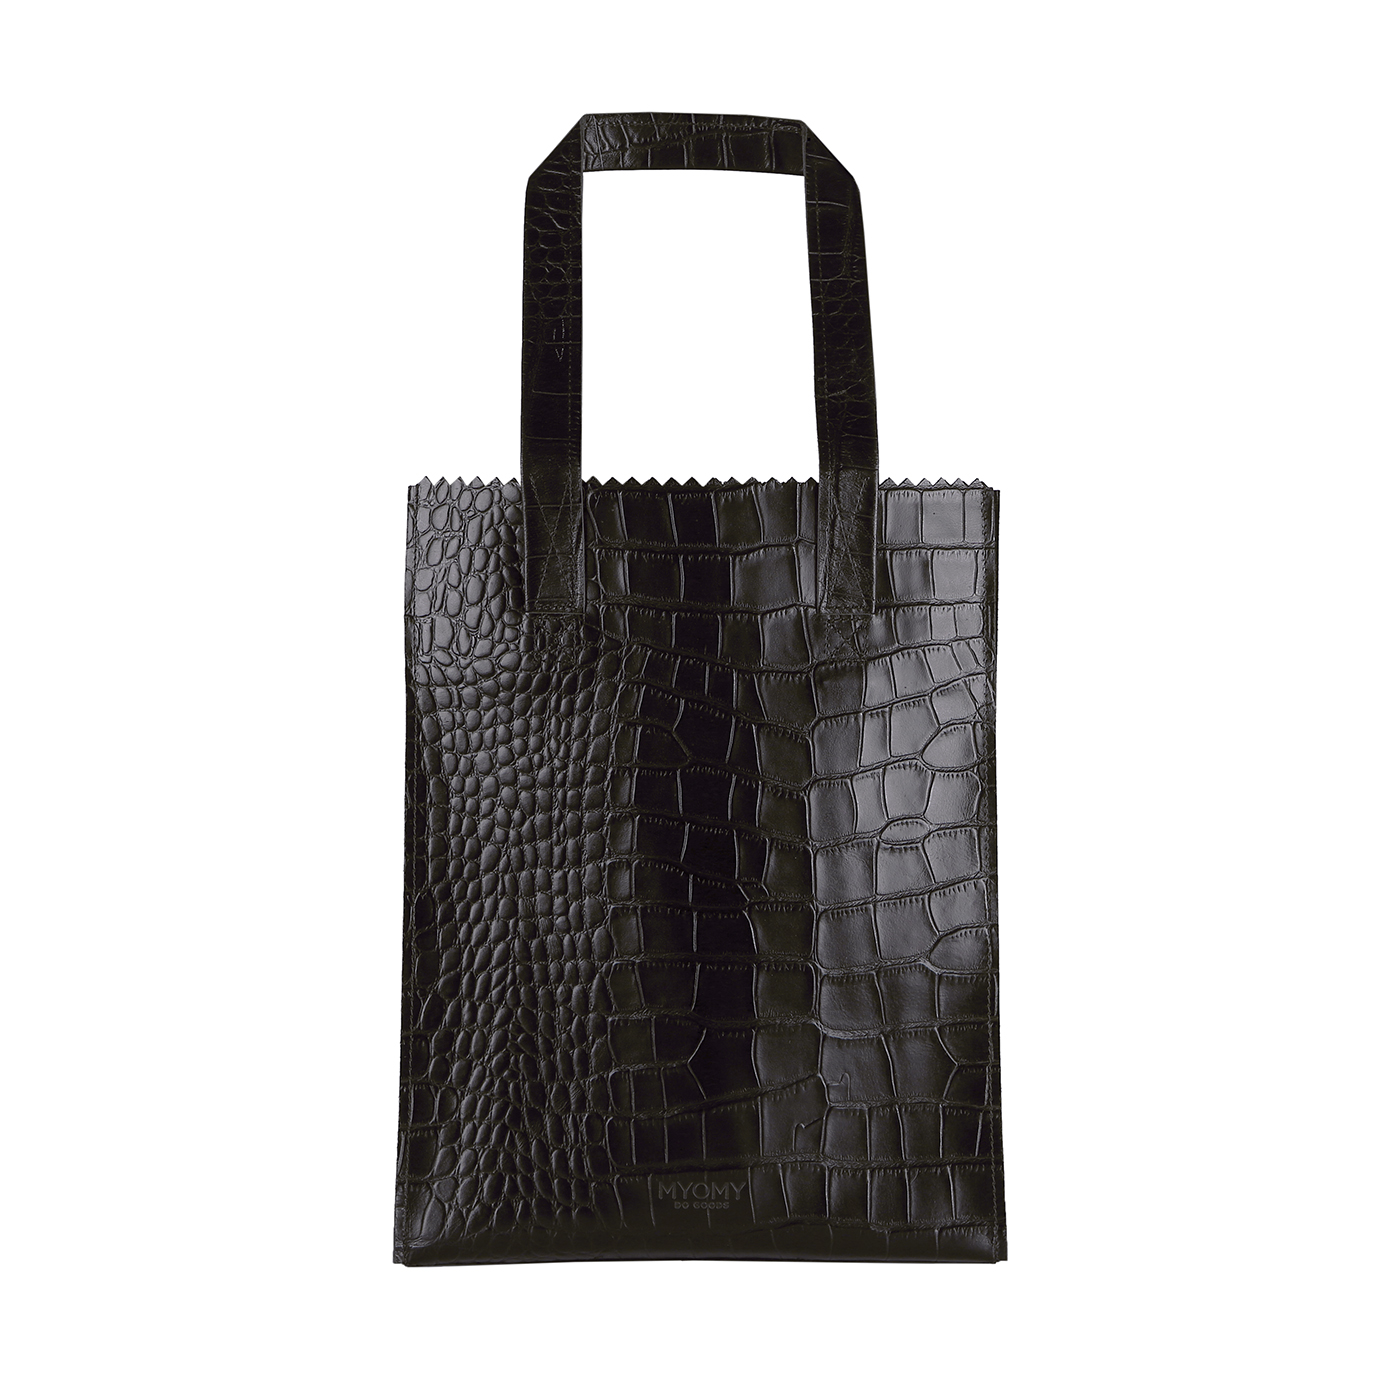 MY PAPER BAG Long handle zip – croco black